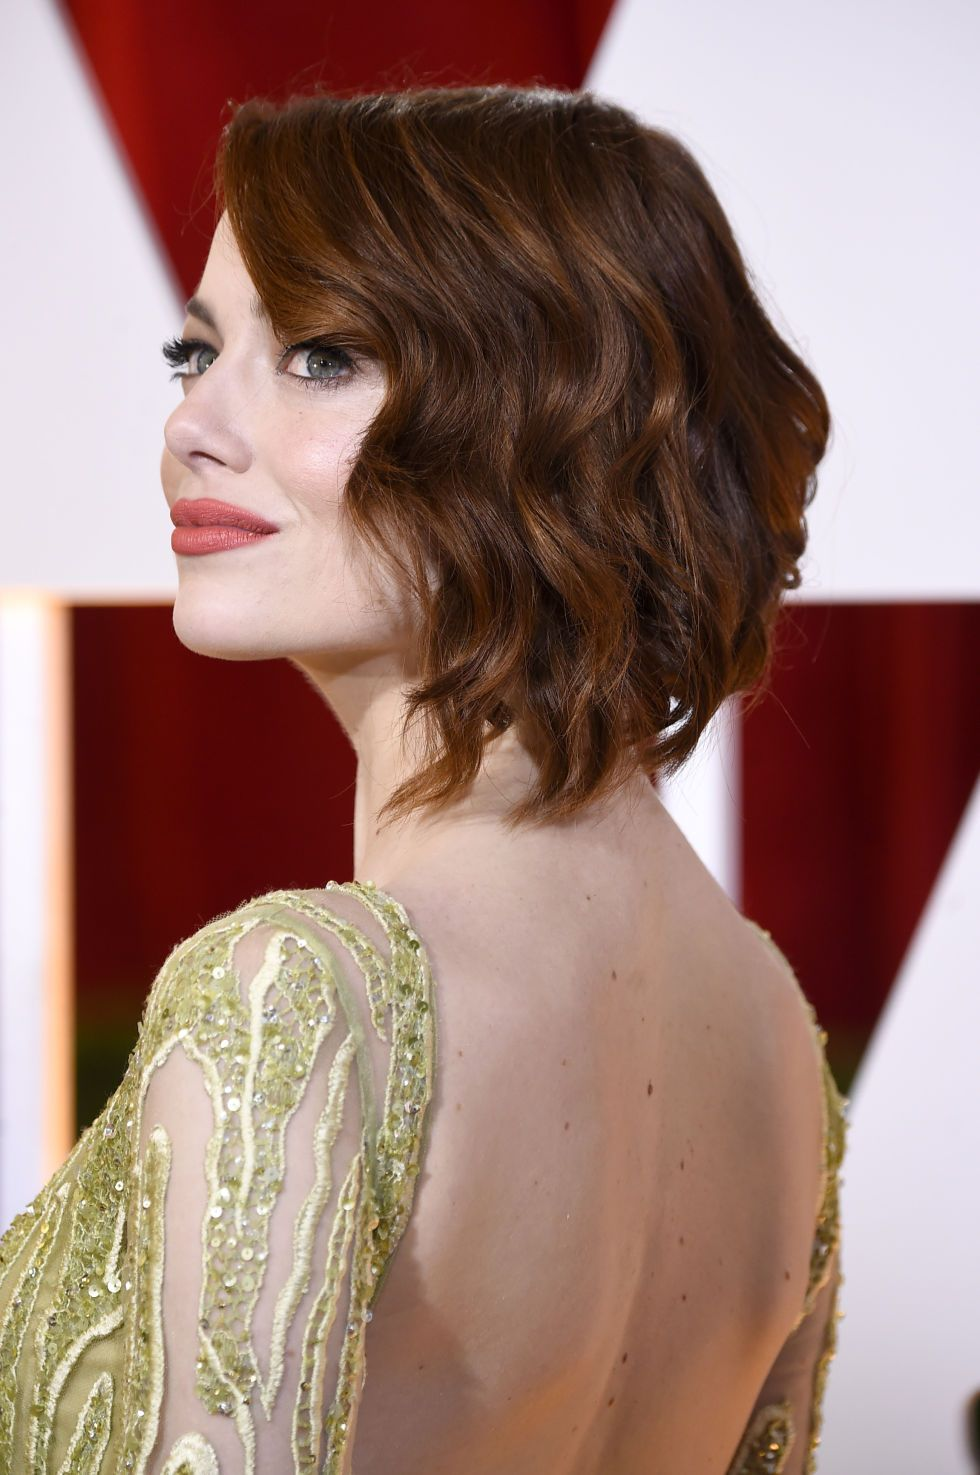 The best beauty looks at the oscars deep red hair bold lips and